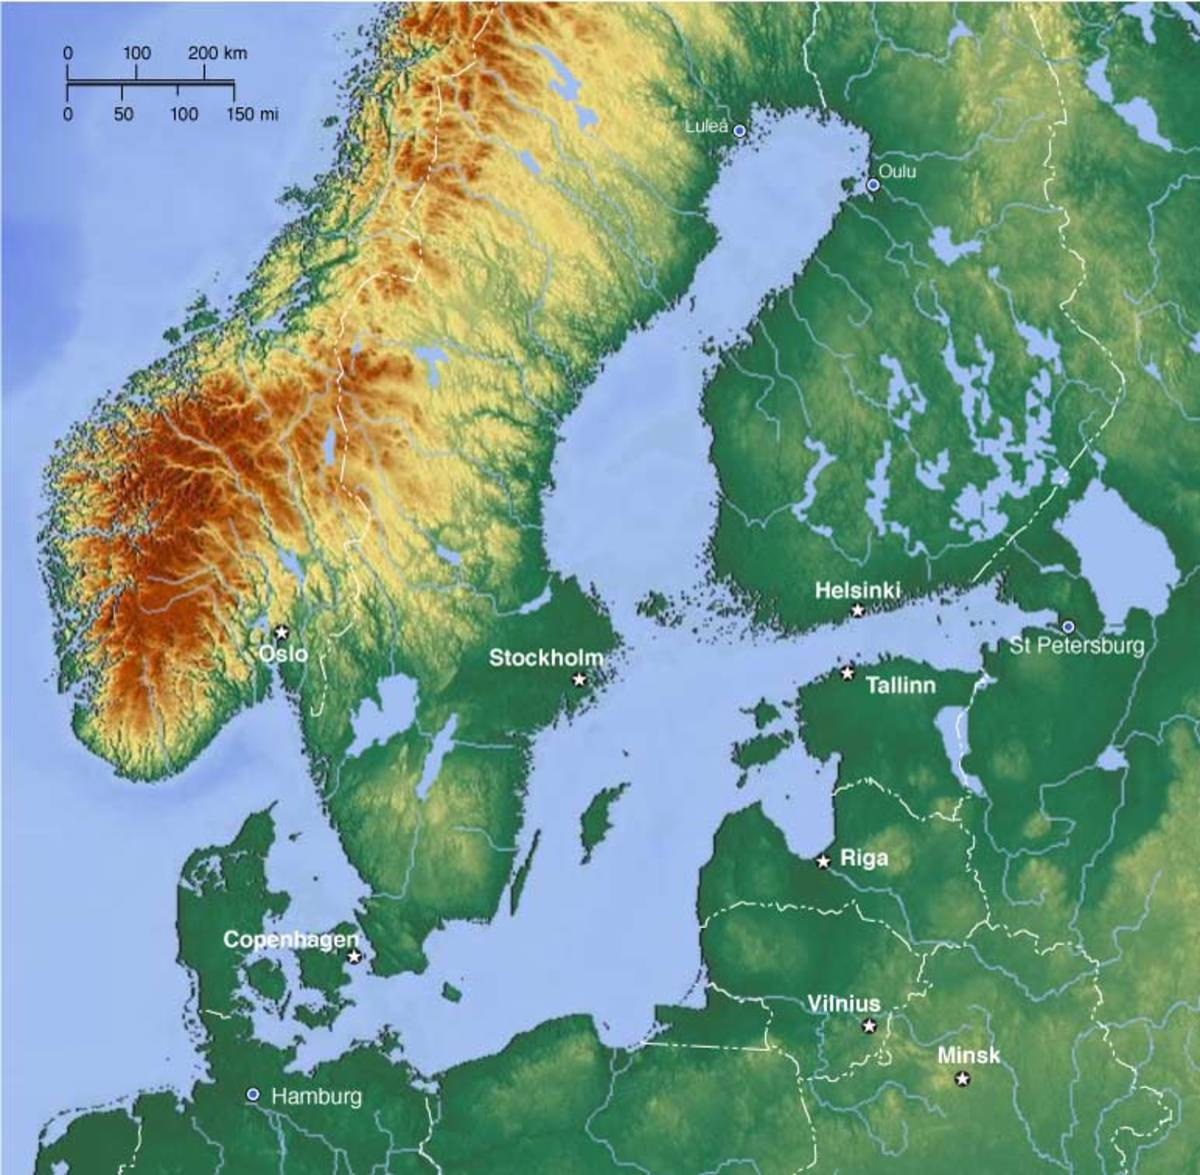 Topographic map of Scandinavia and the Baltic region illustrates the need to push beyond the bounds of their own lands